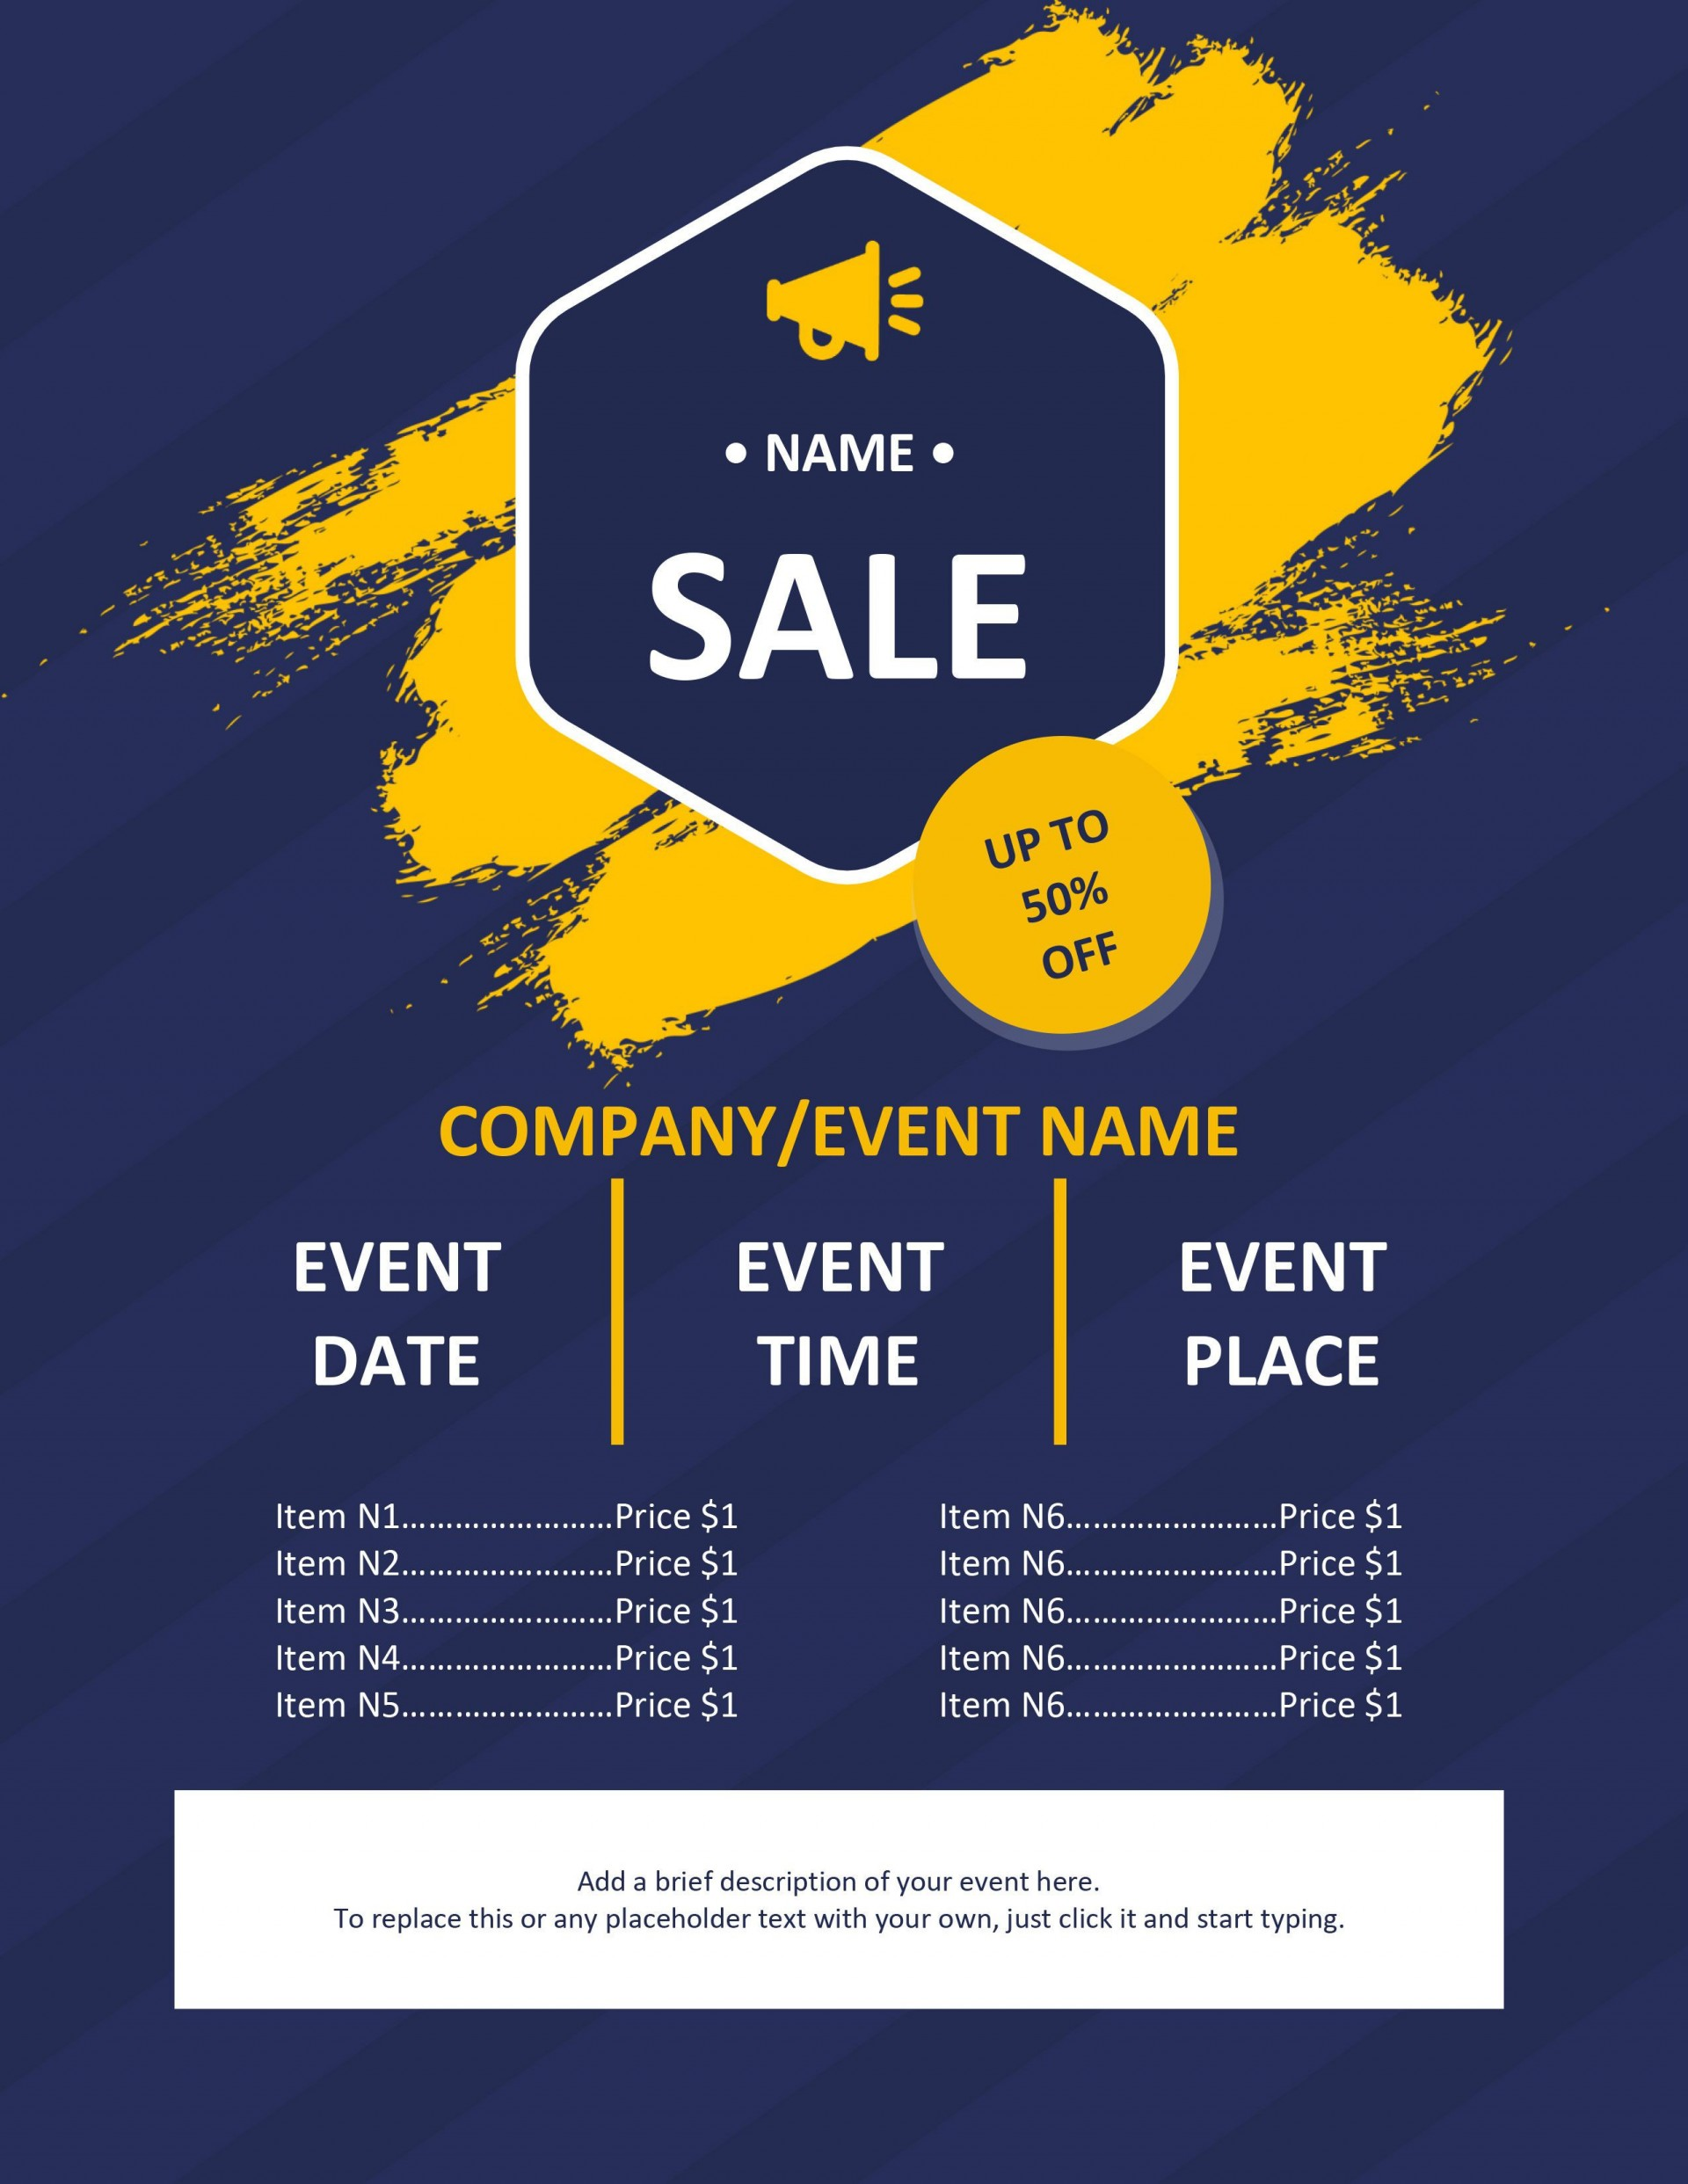 008 Shocking Free Event Flyer Template Word Inspiration  Microsoft1920